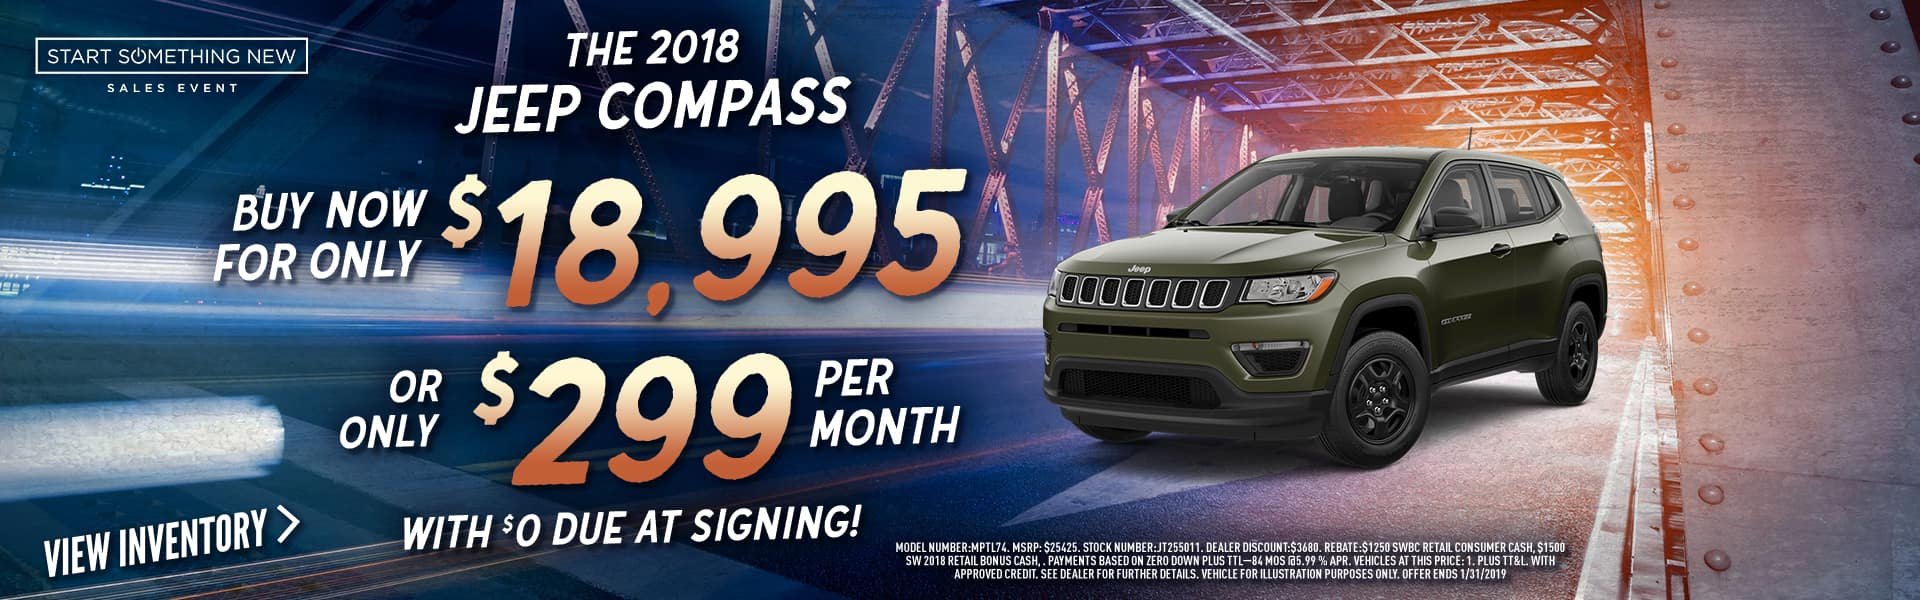 2018-jeep-compass-beaumont-tx-for-sale